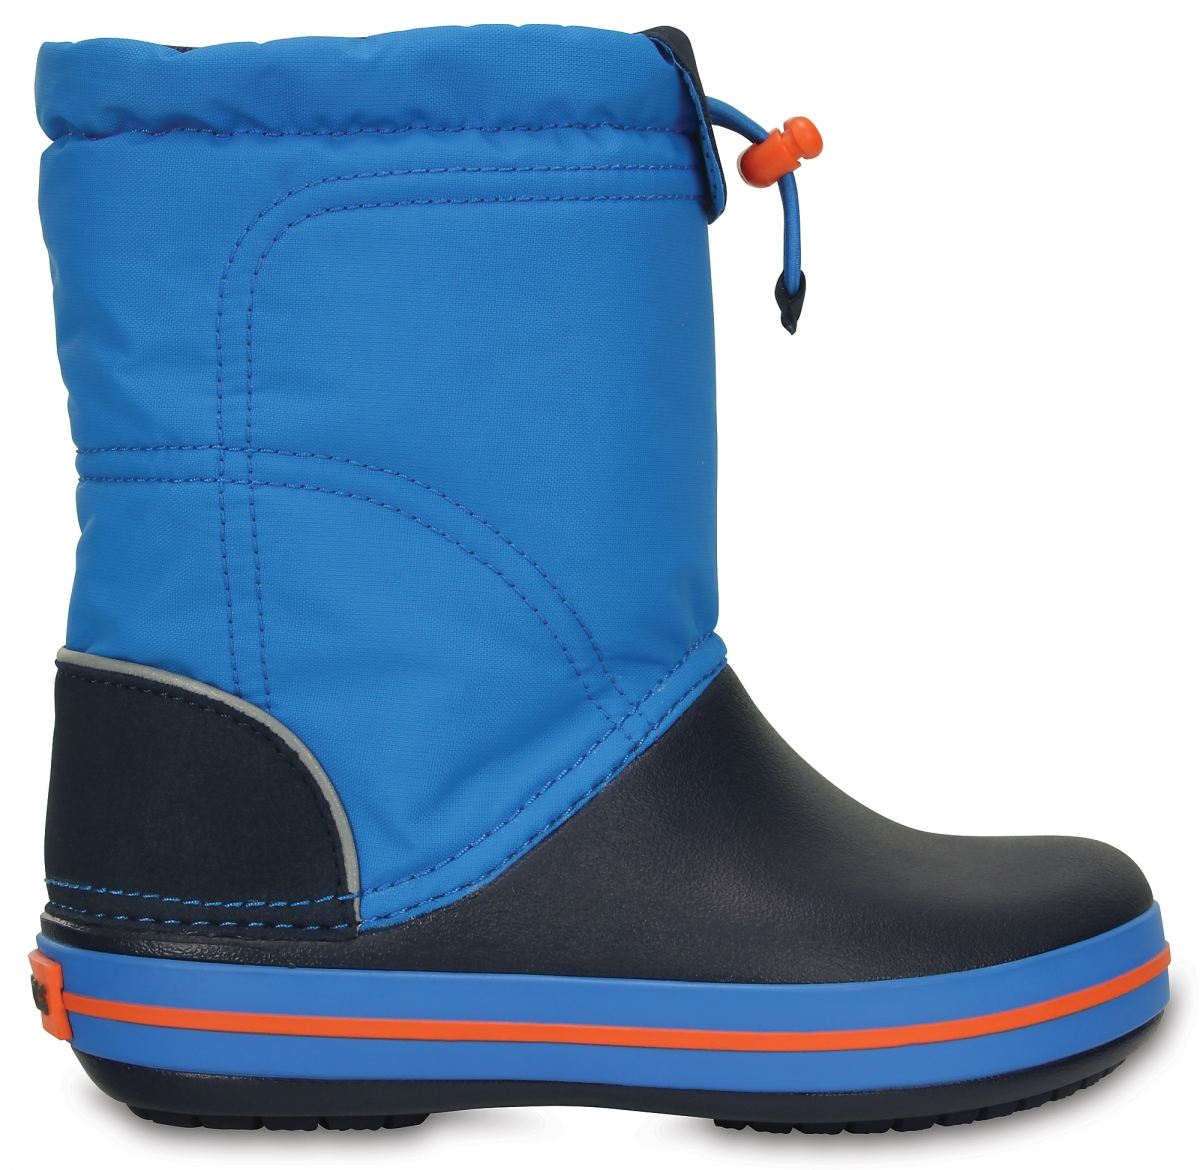 Crocs Crocband LodgePoint Boot Kids - Ocean/Navy, C13 (30-31)